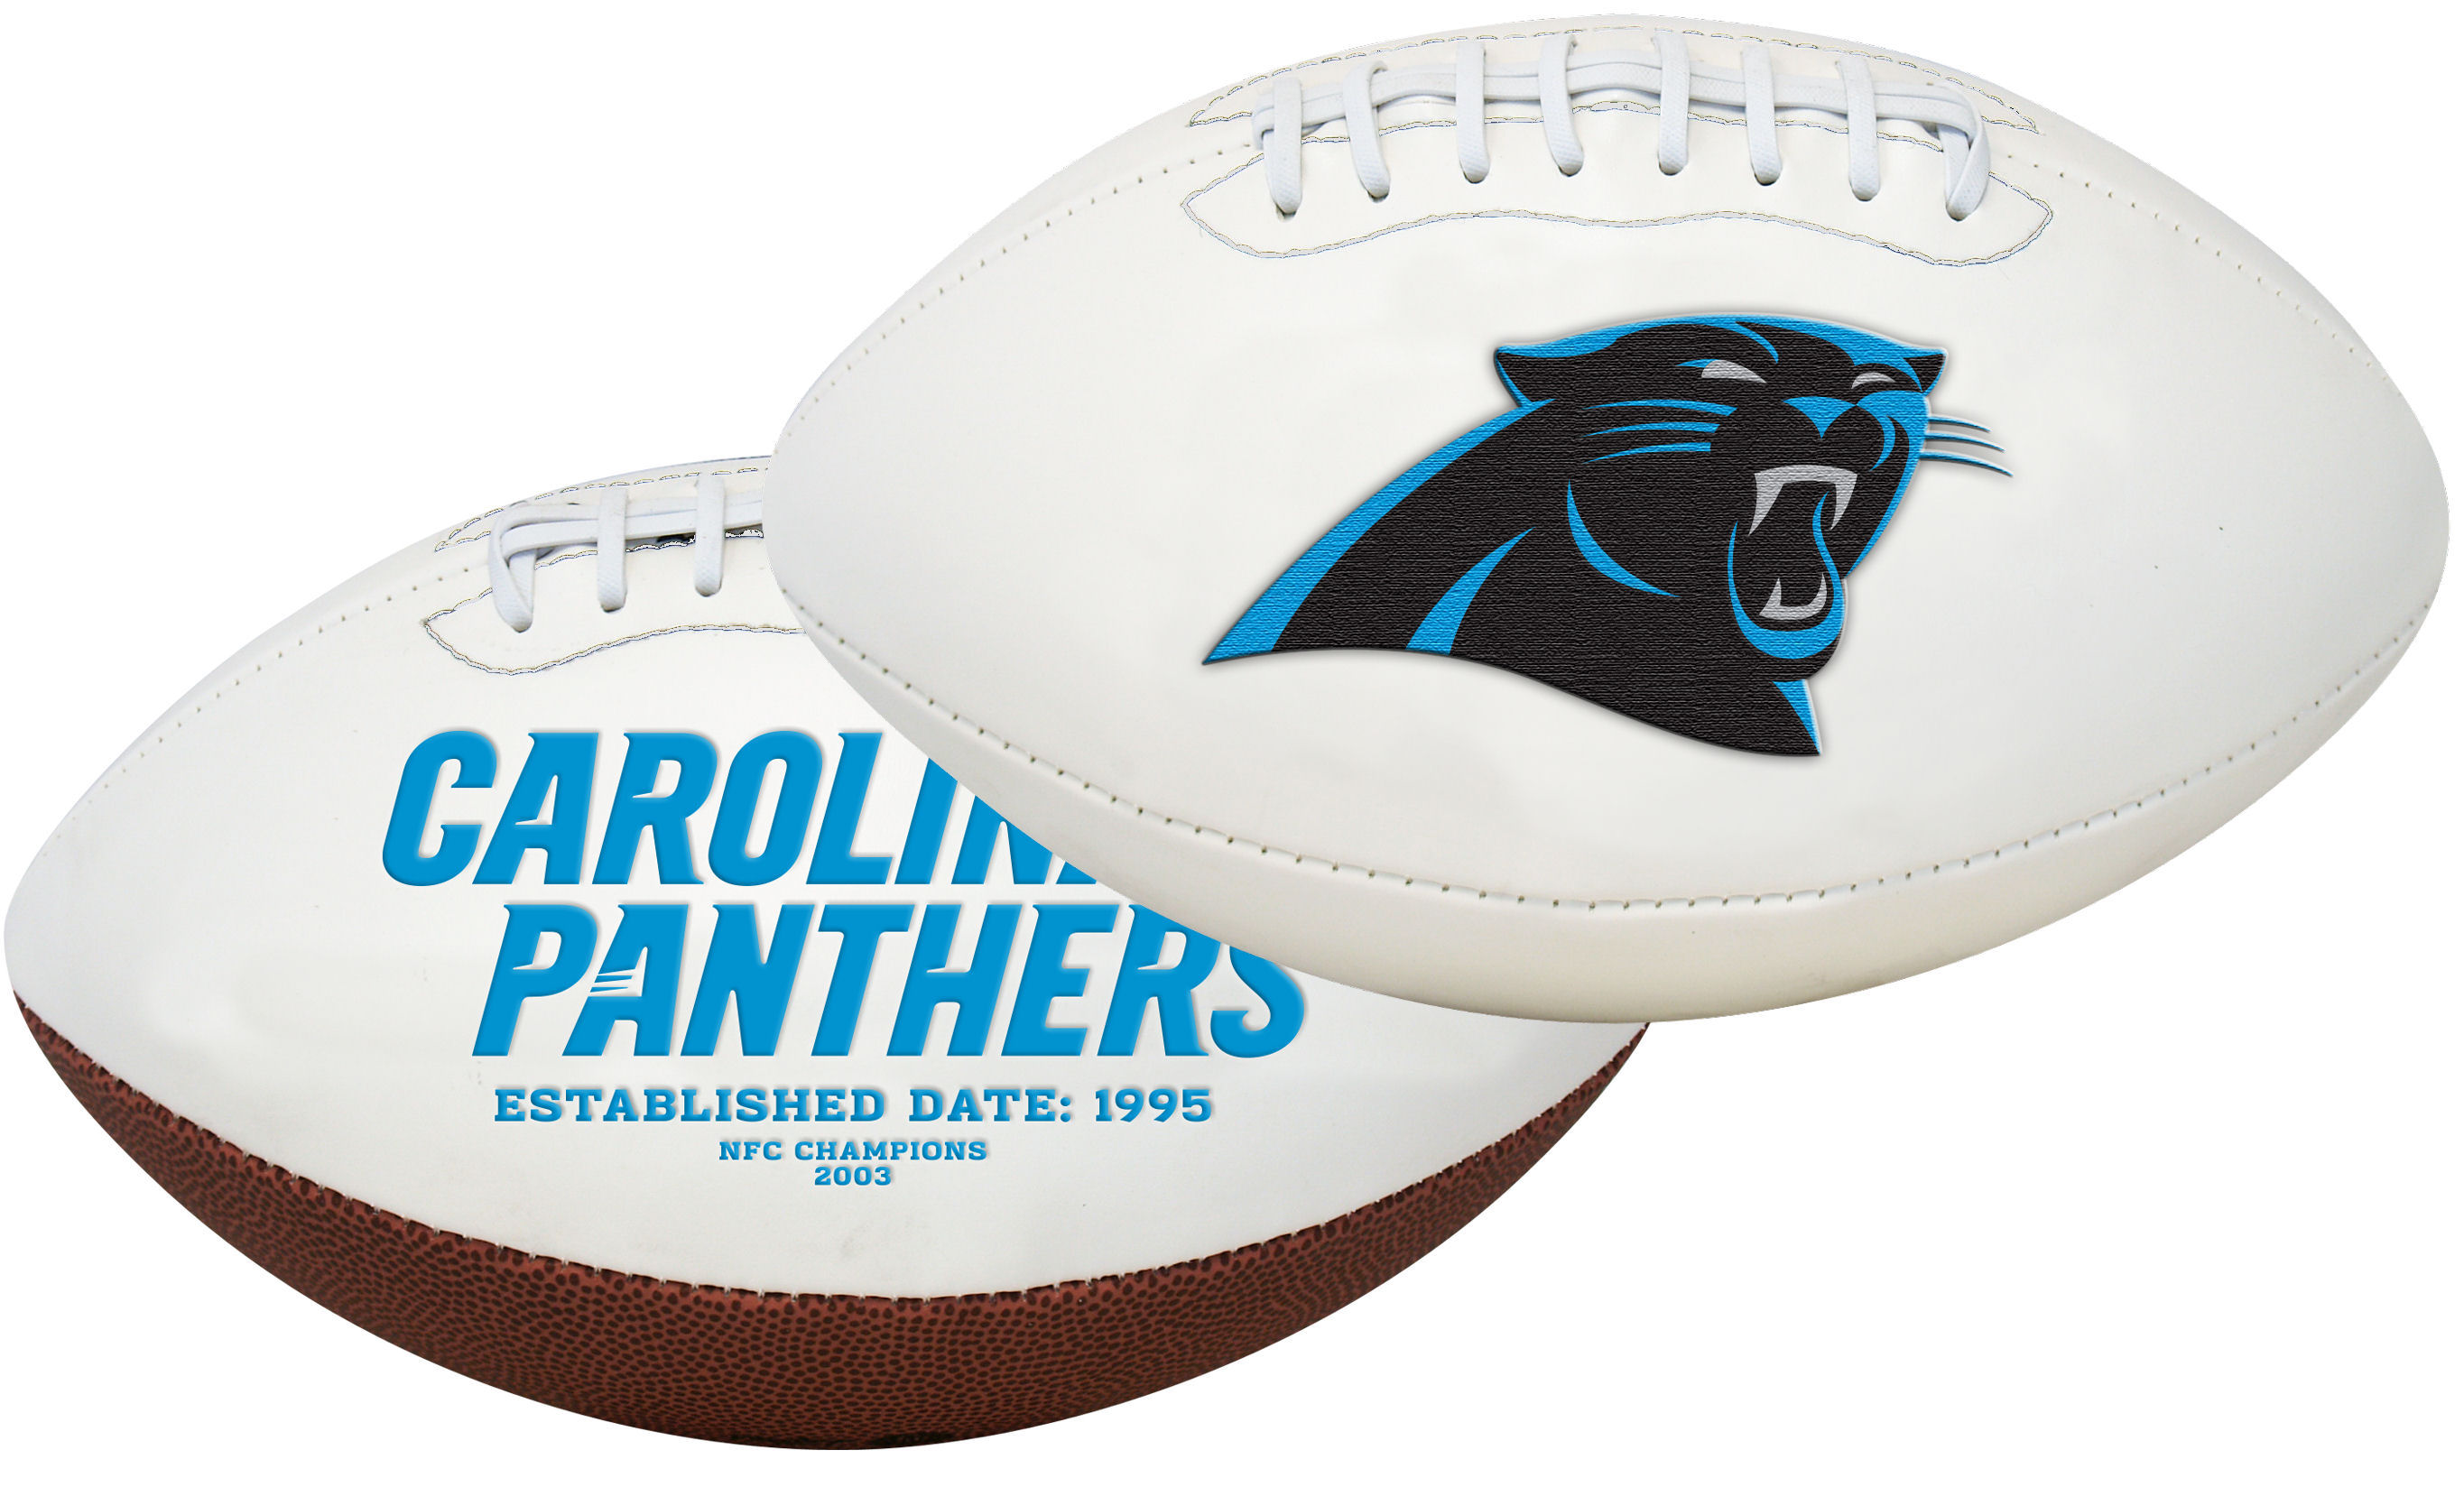 Carolina Panthers NFL Signature Series Full Size Football